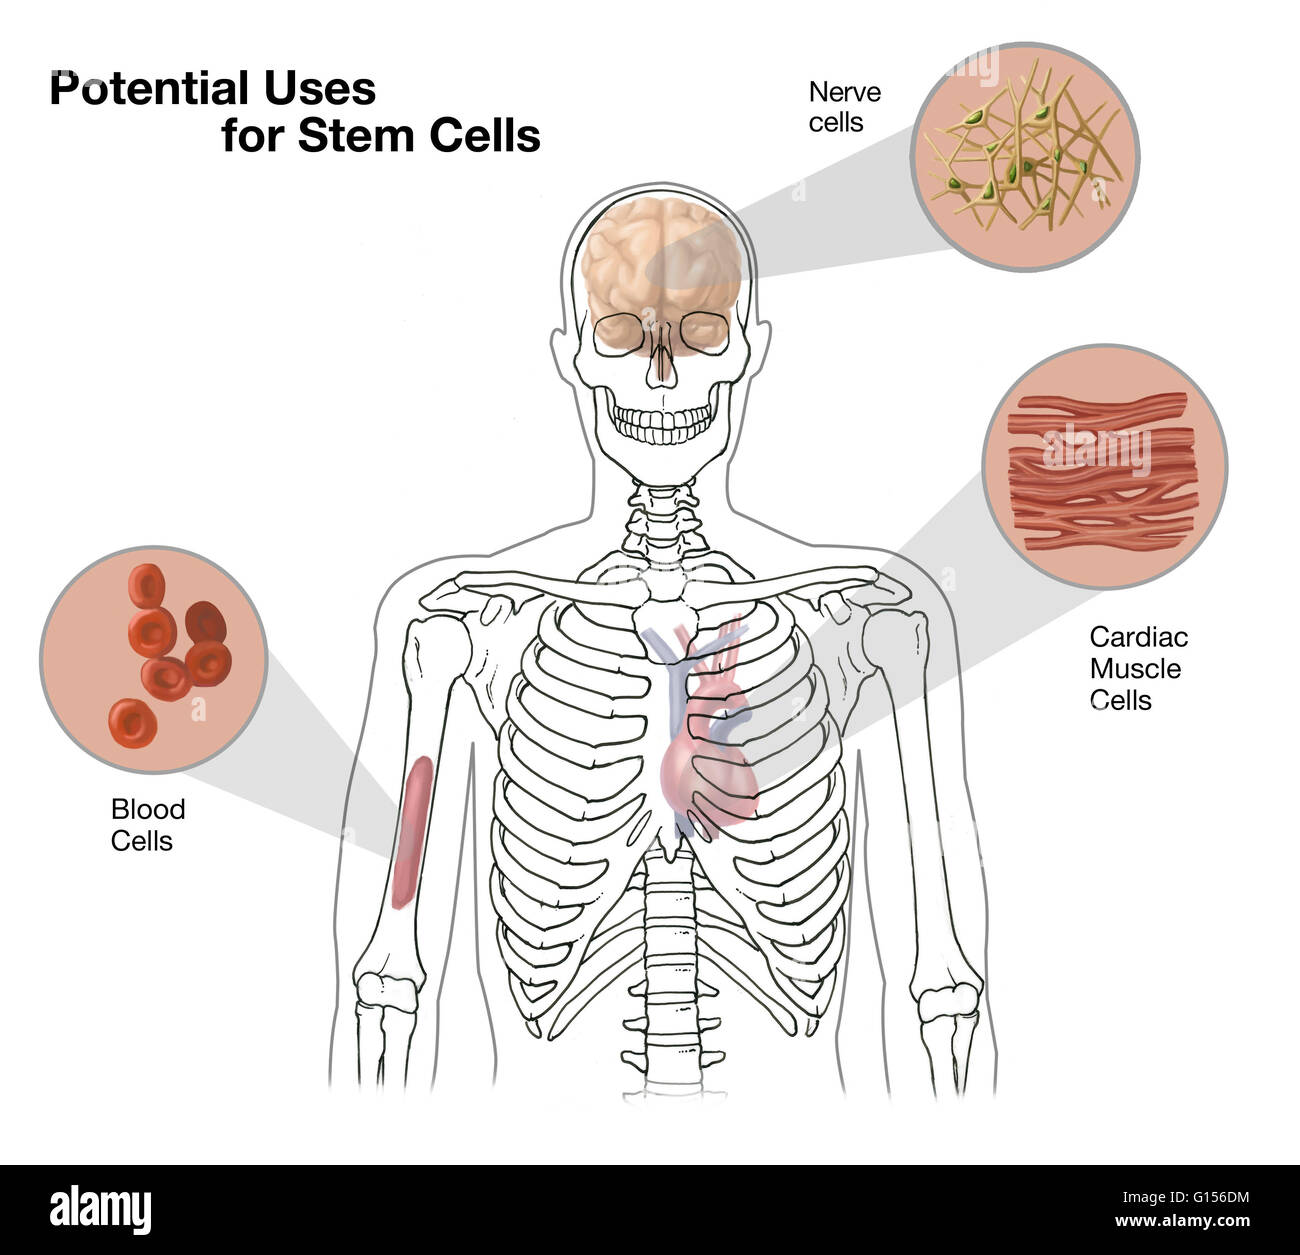 Heart transplant diagram stock photos heart transplant diagram diagram showing the potential uses for stem cells to replace or replenish damaged cells in other ccuart Choice Image